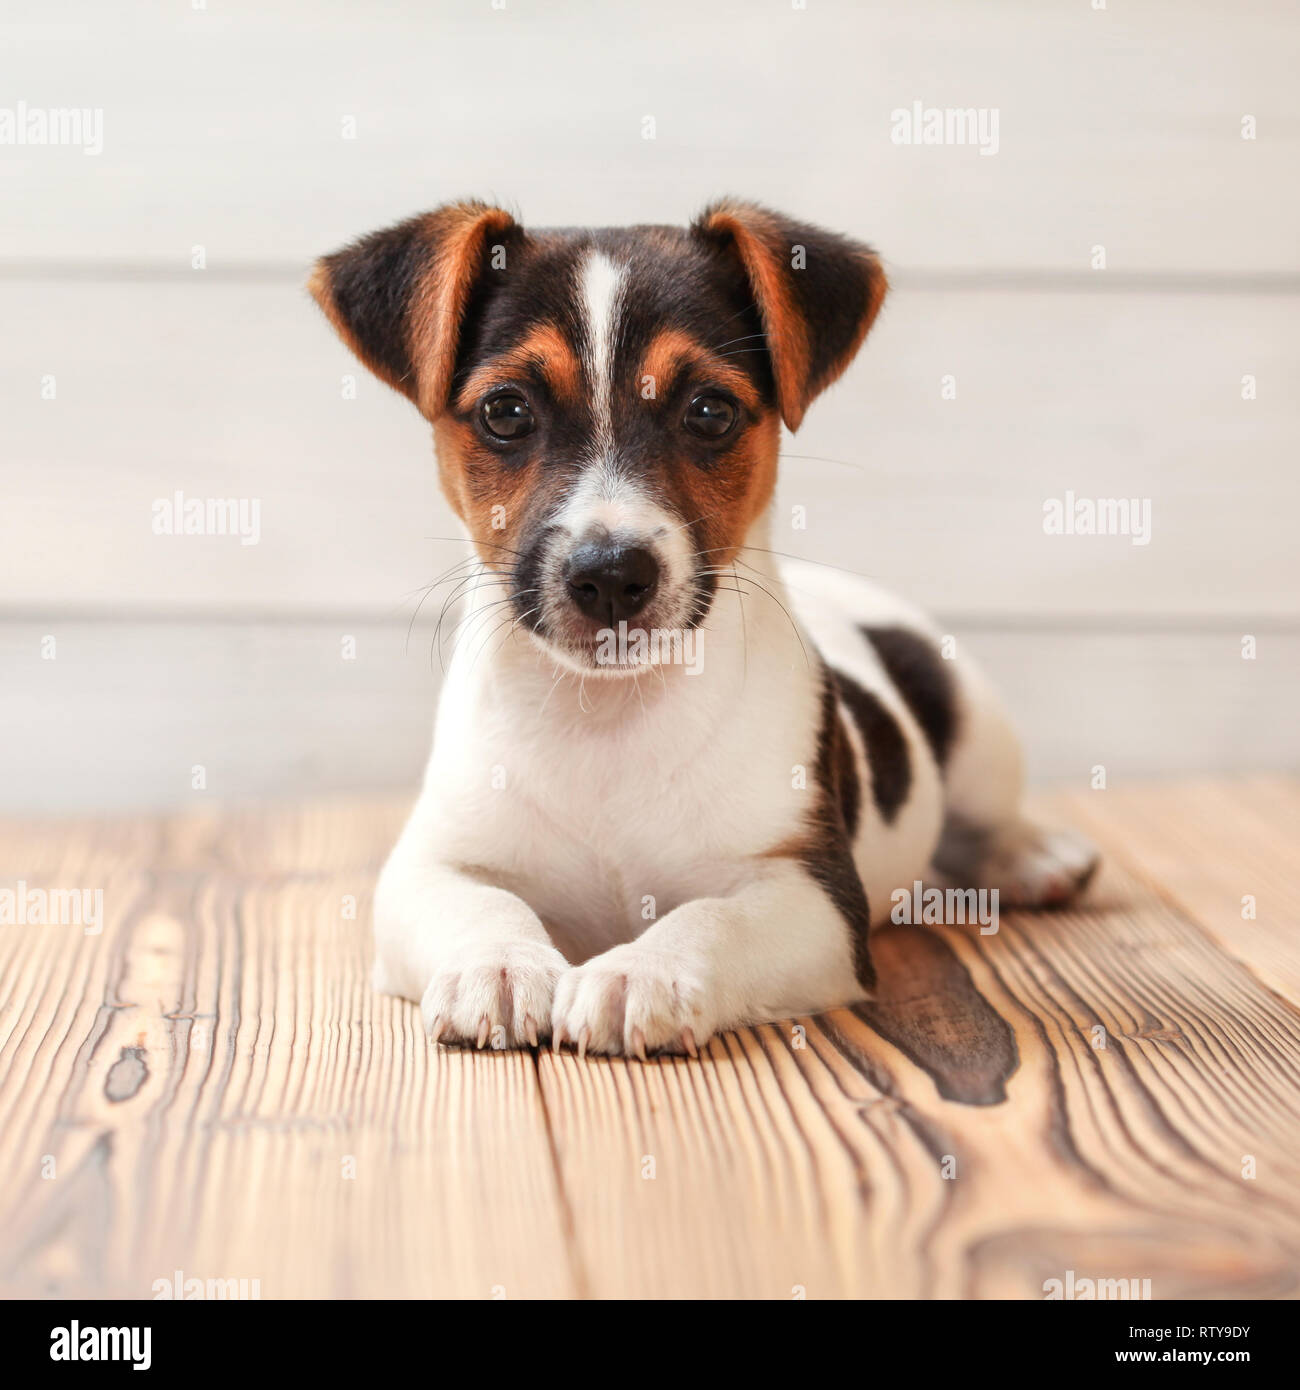 Jack Russell Terrier Puppy Laying On Boards Floor Studio Shot Stock Photo Alamy